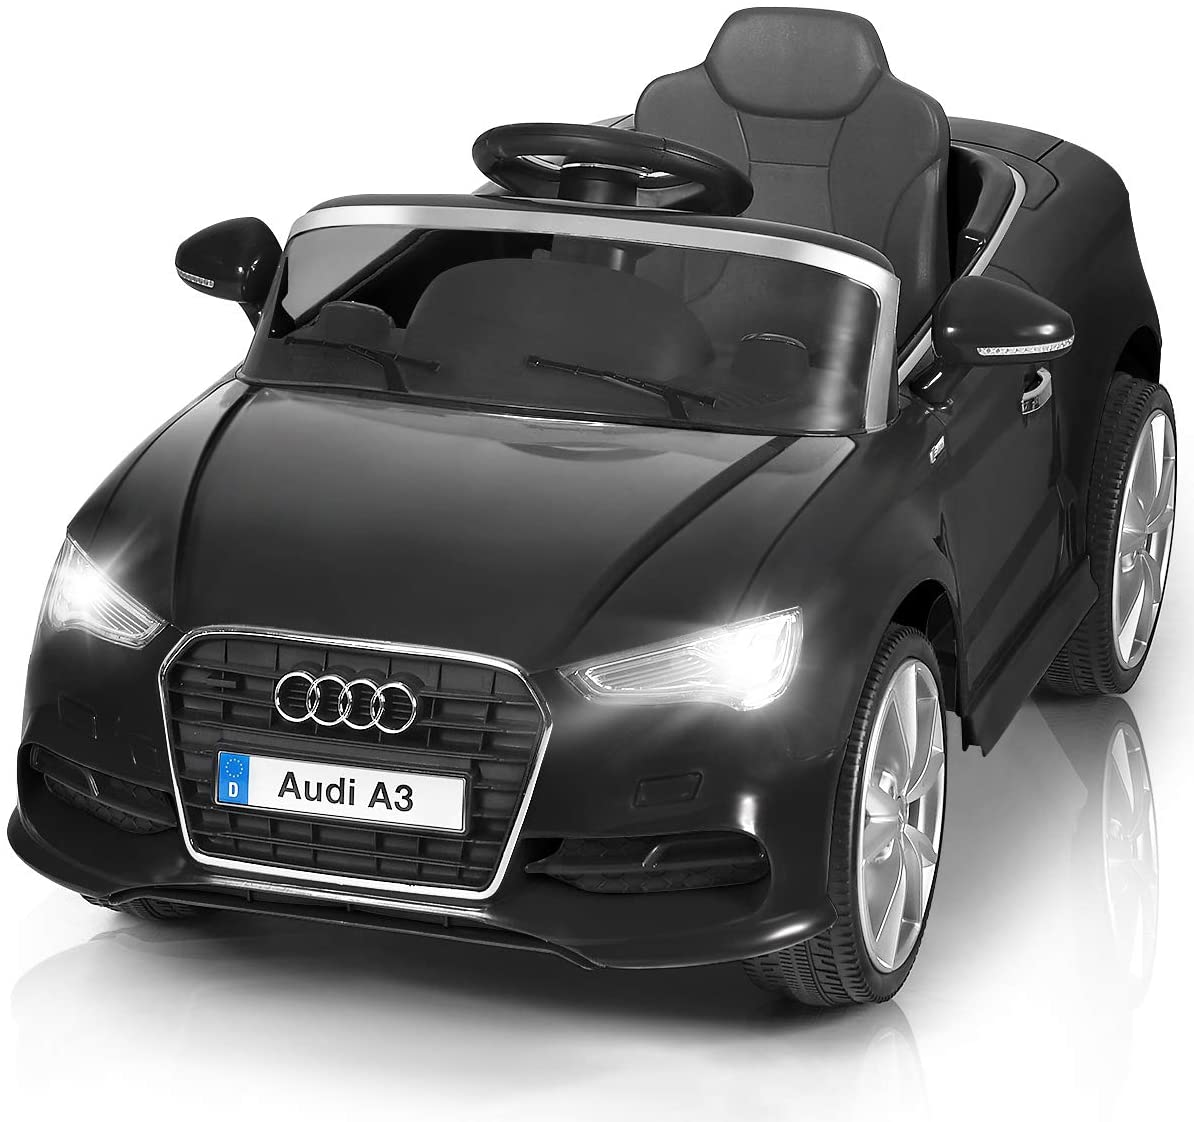 Kids Ride On Toy Car Audi A3